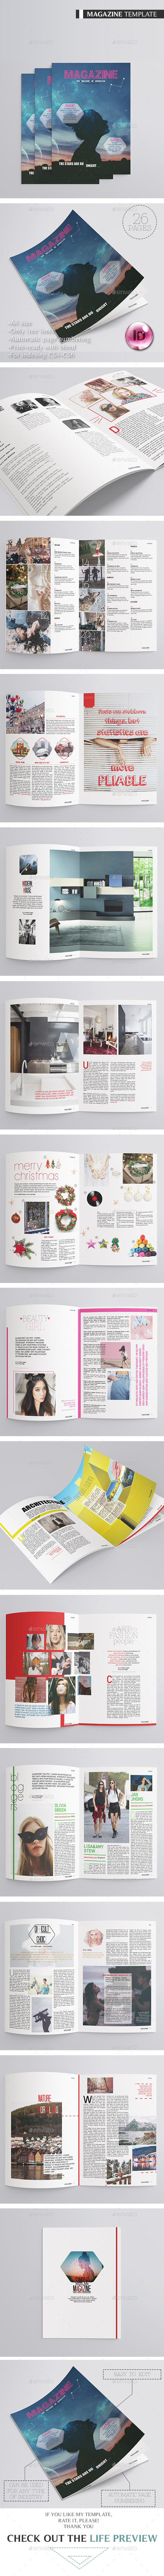 Magazine Multipurpose 26 Pages - Magazines Print Templates